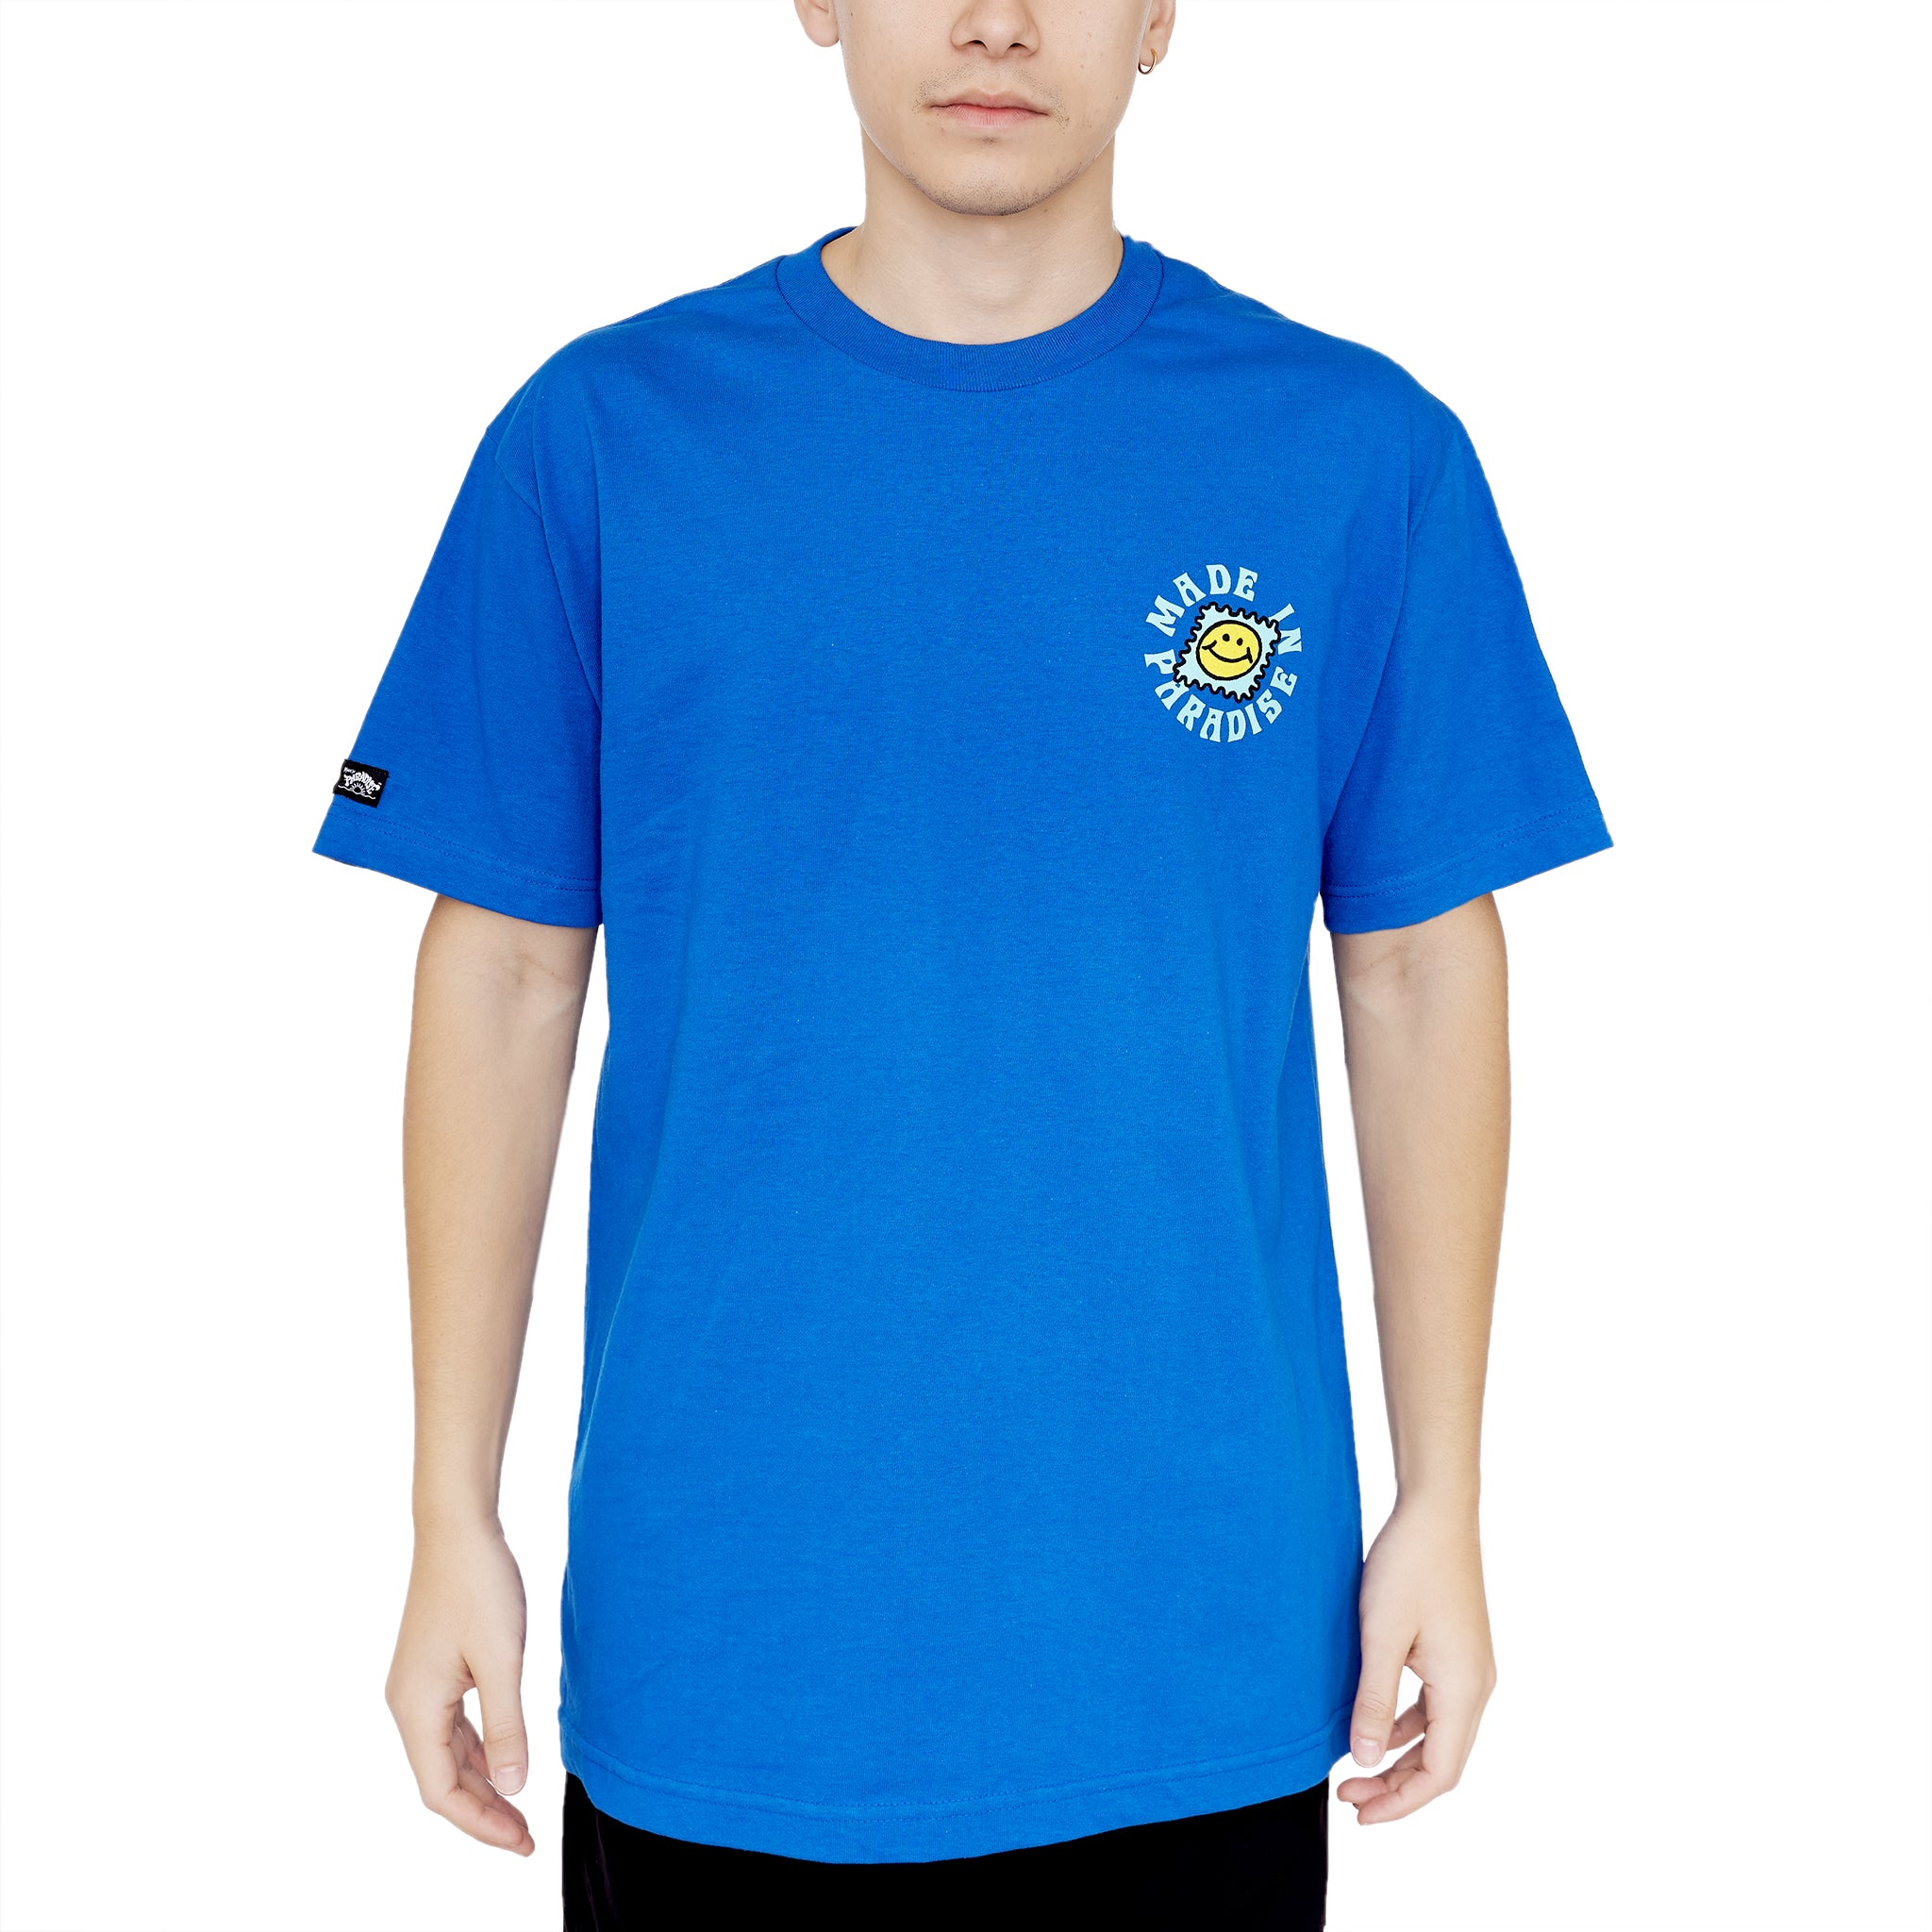 TASTE THE SUNSHINE TEE - BLUE